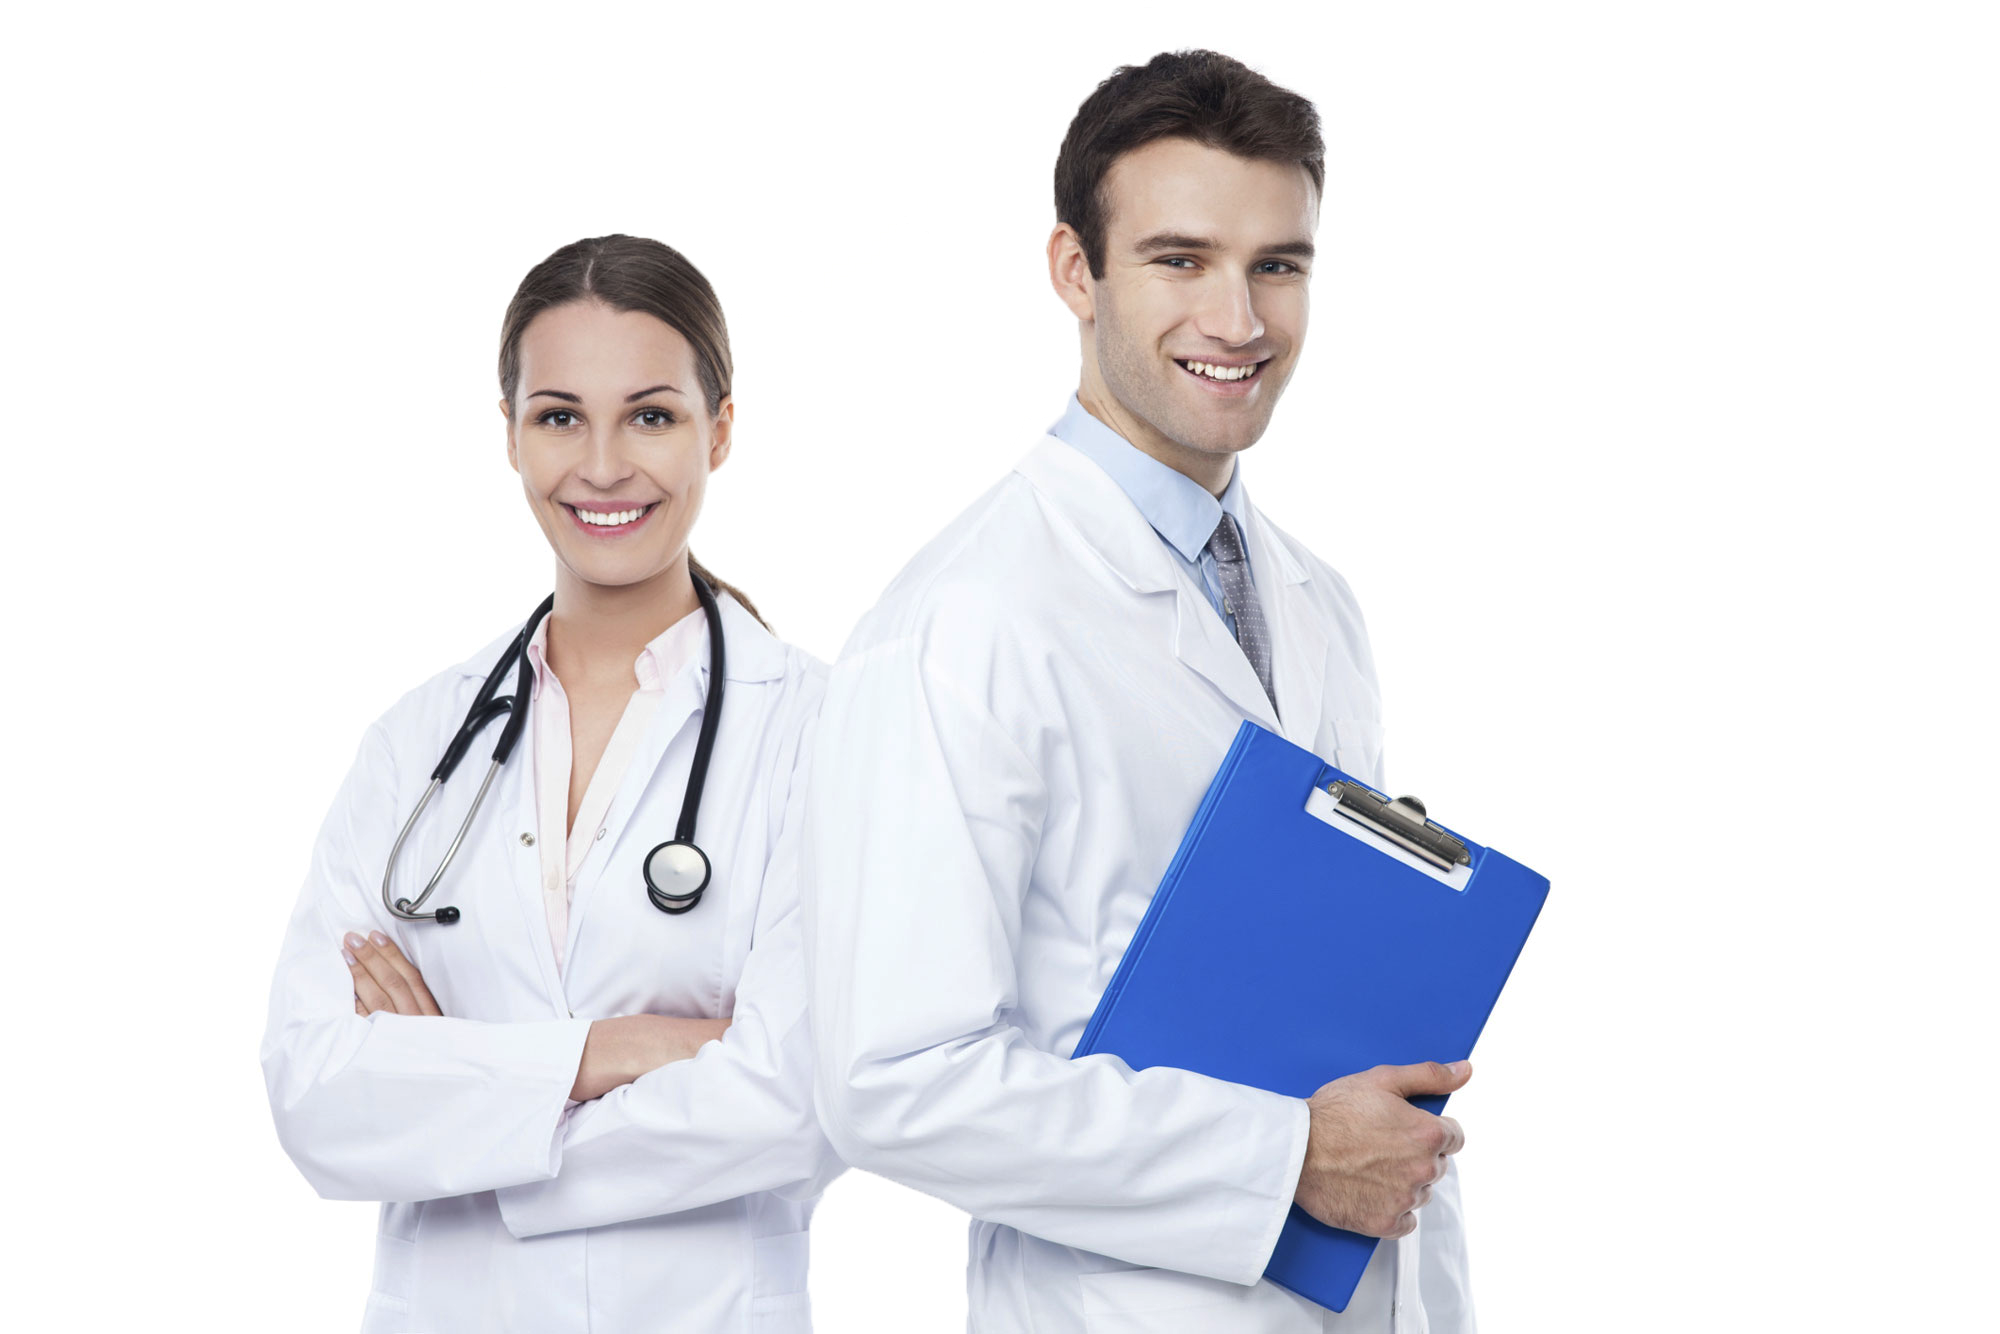 Doctor Images Png (+).